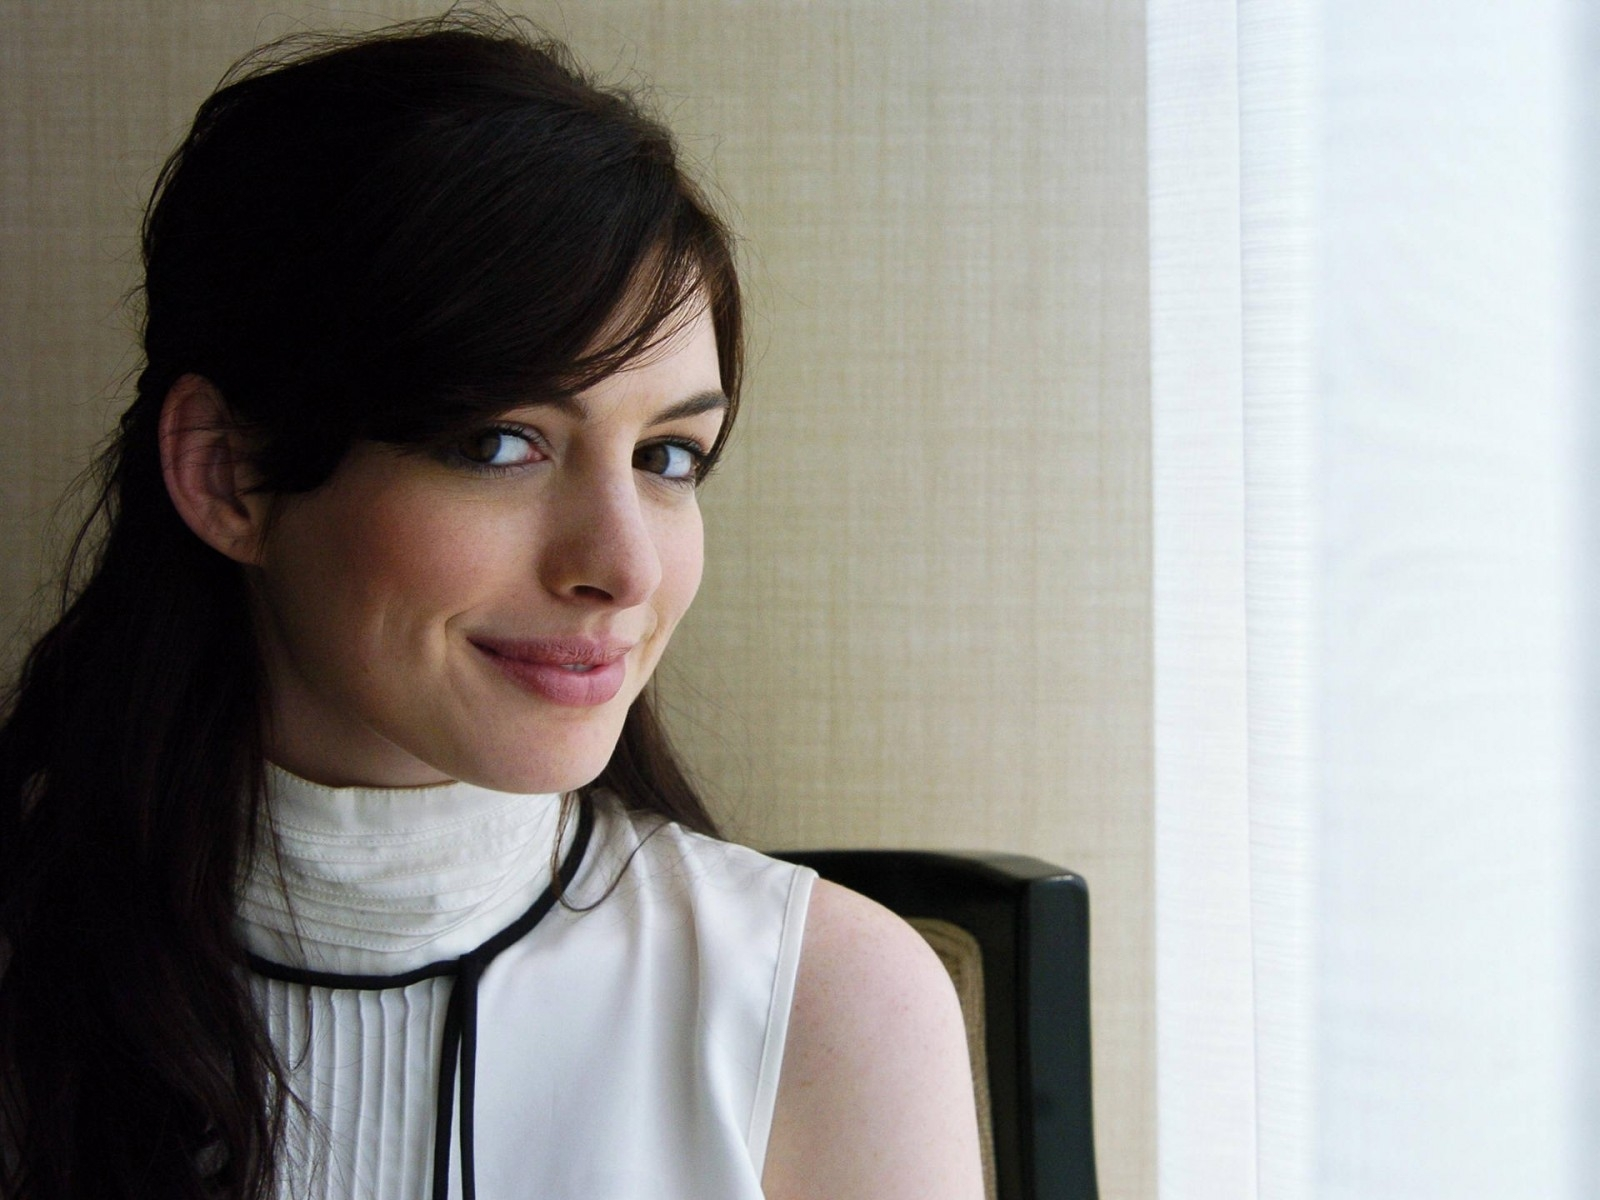 Anne hathaway actress all fantasy